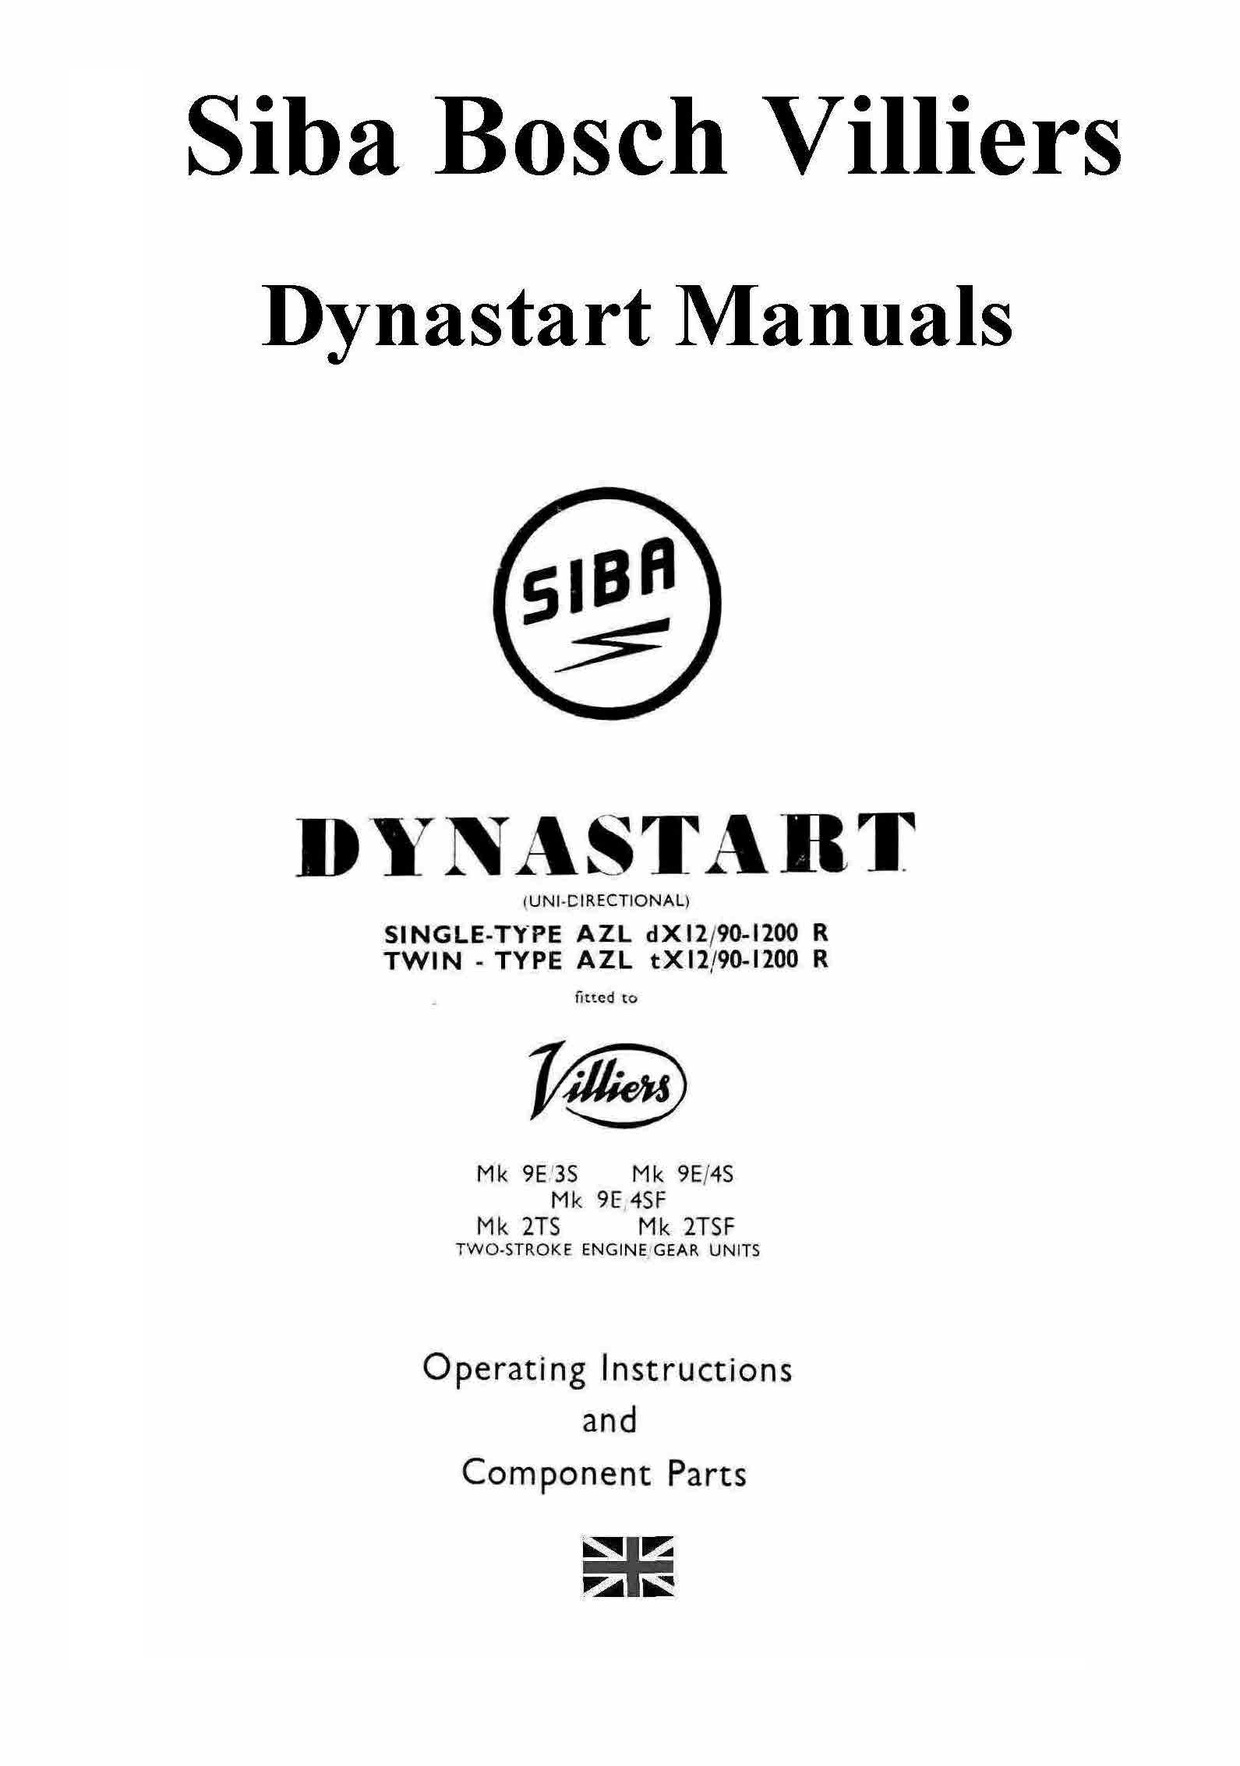 dynastart wiring diagram nissan 350z bose villiers siba manuals for mechanics